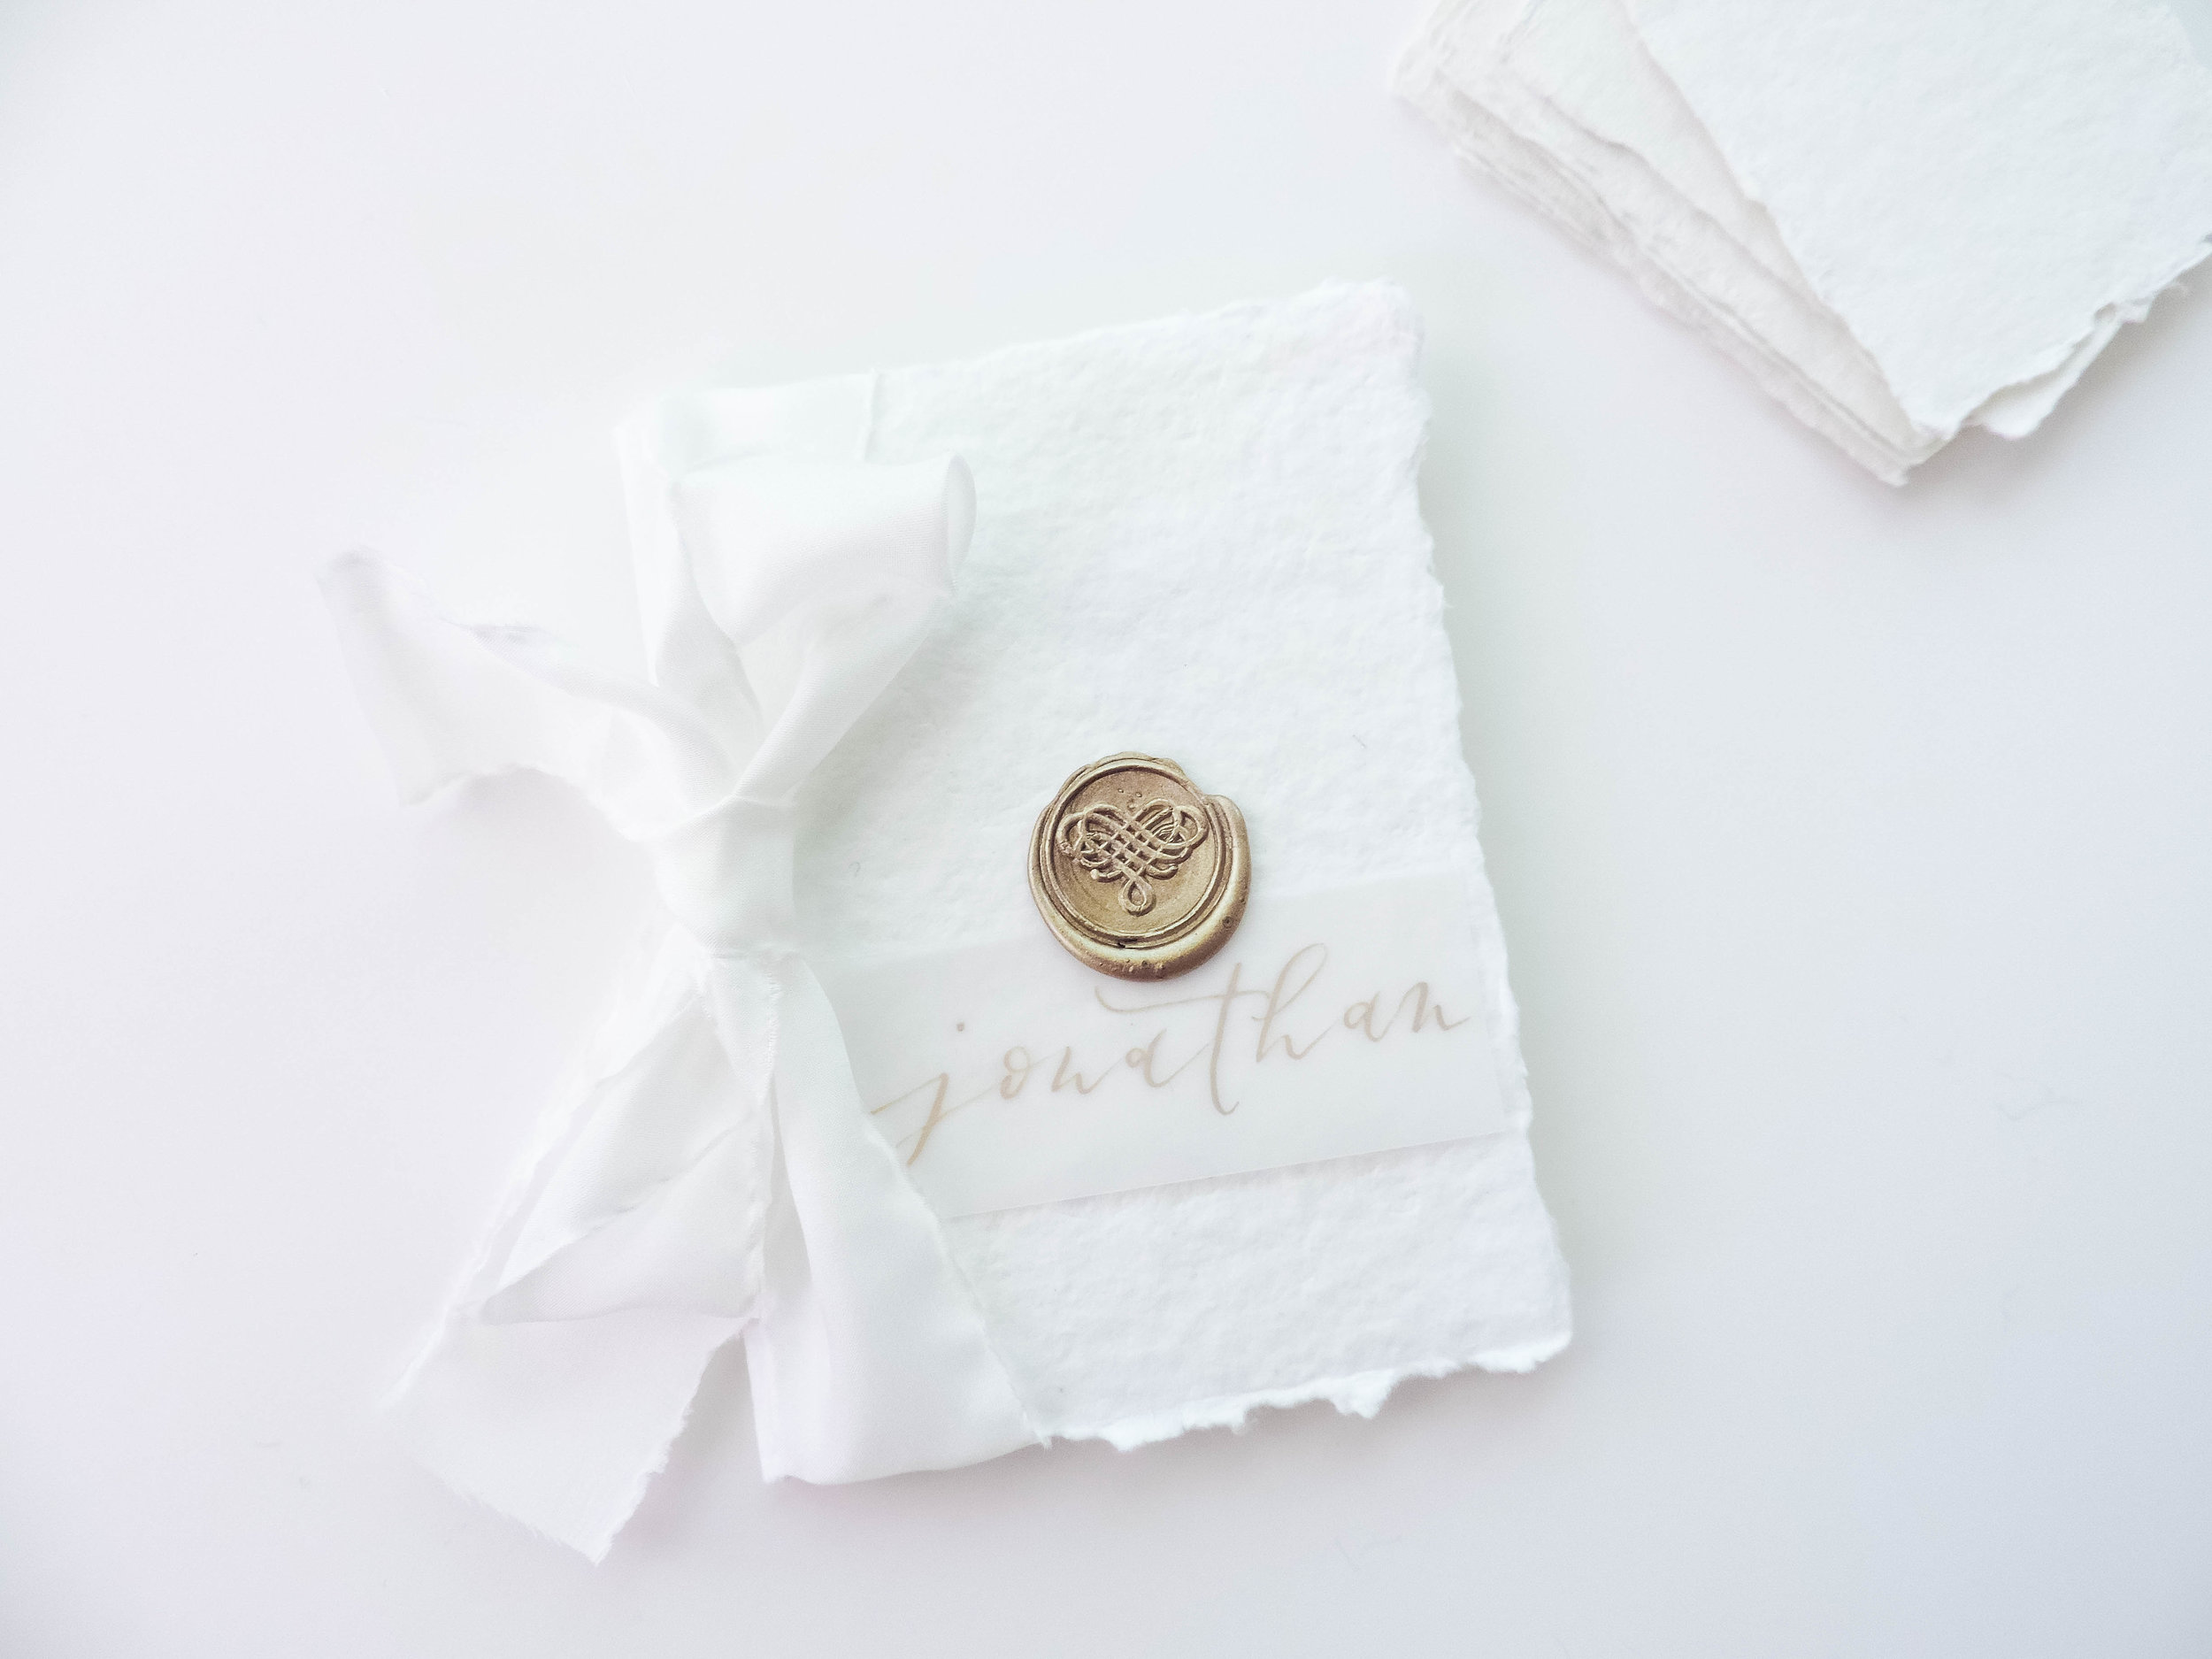 Pictured:  Vellum Place Cards ,  Antique Gold Wax Sticks  and  Heart Wax Seal Stamp  by Uniqooo